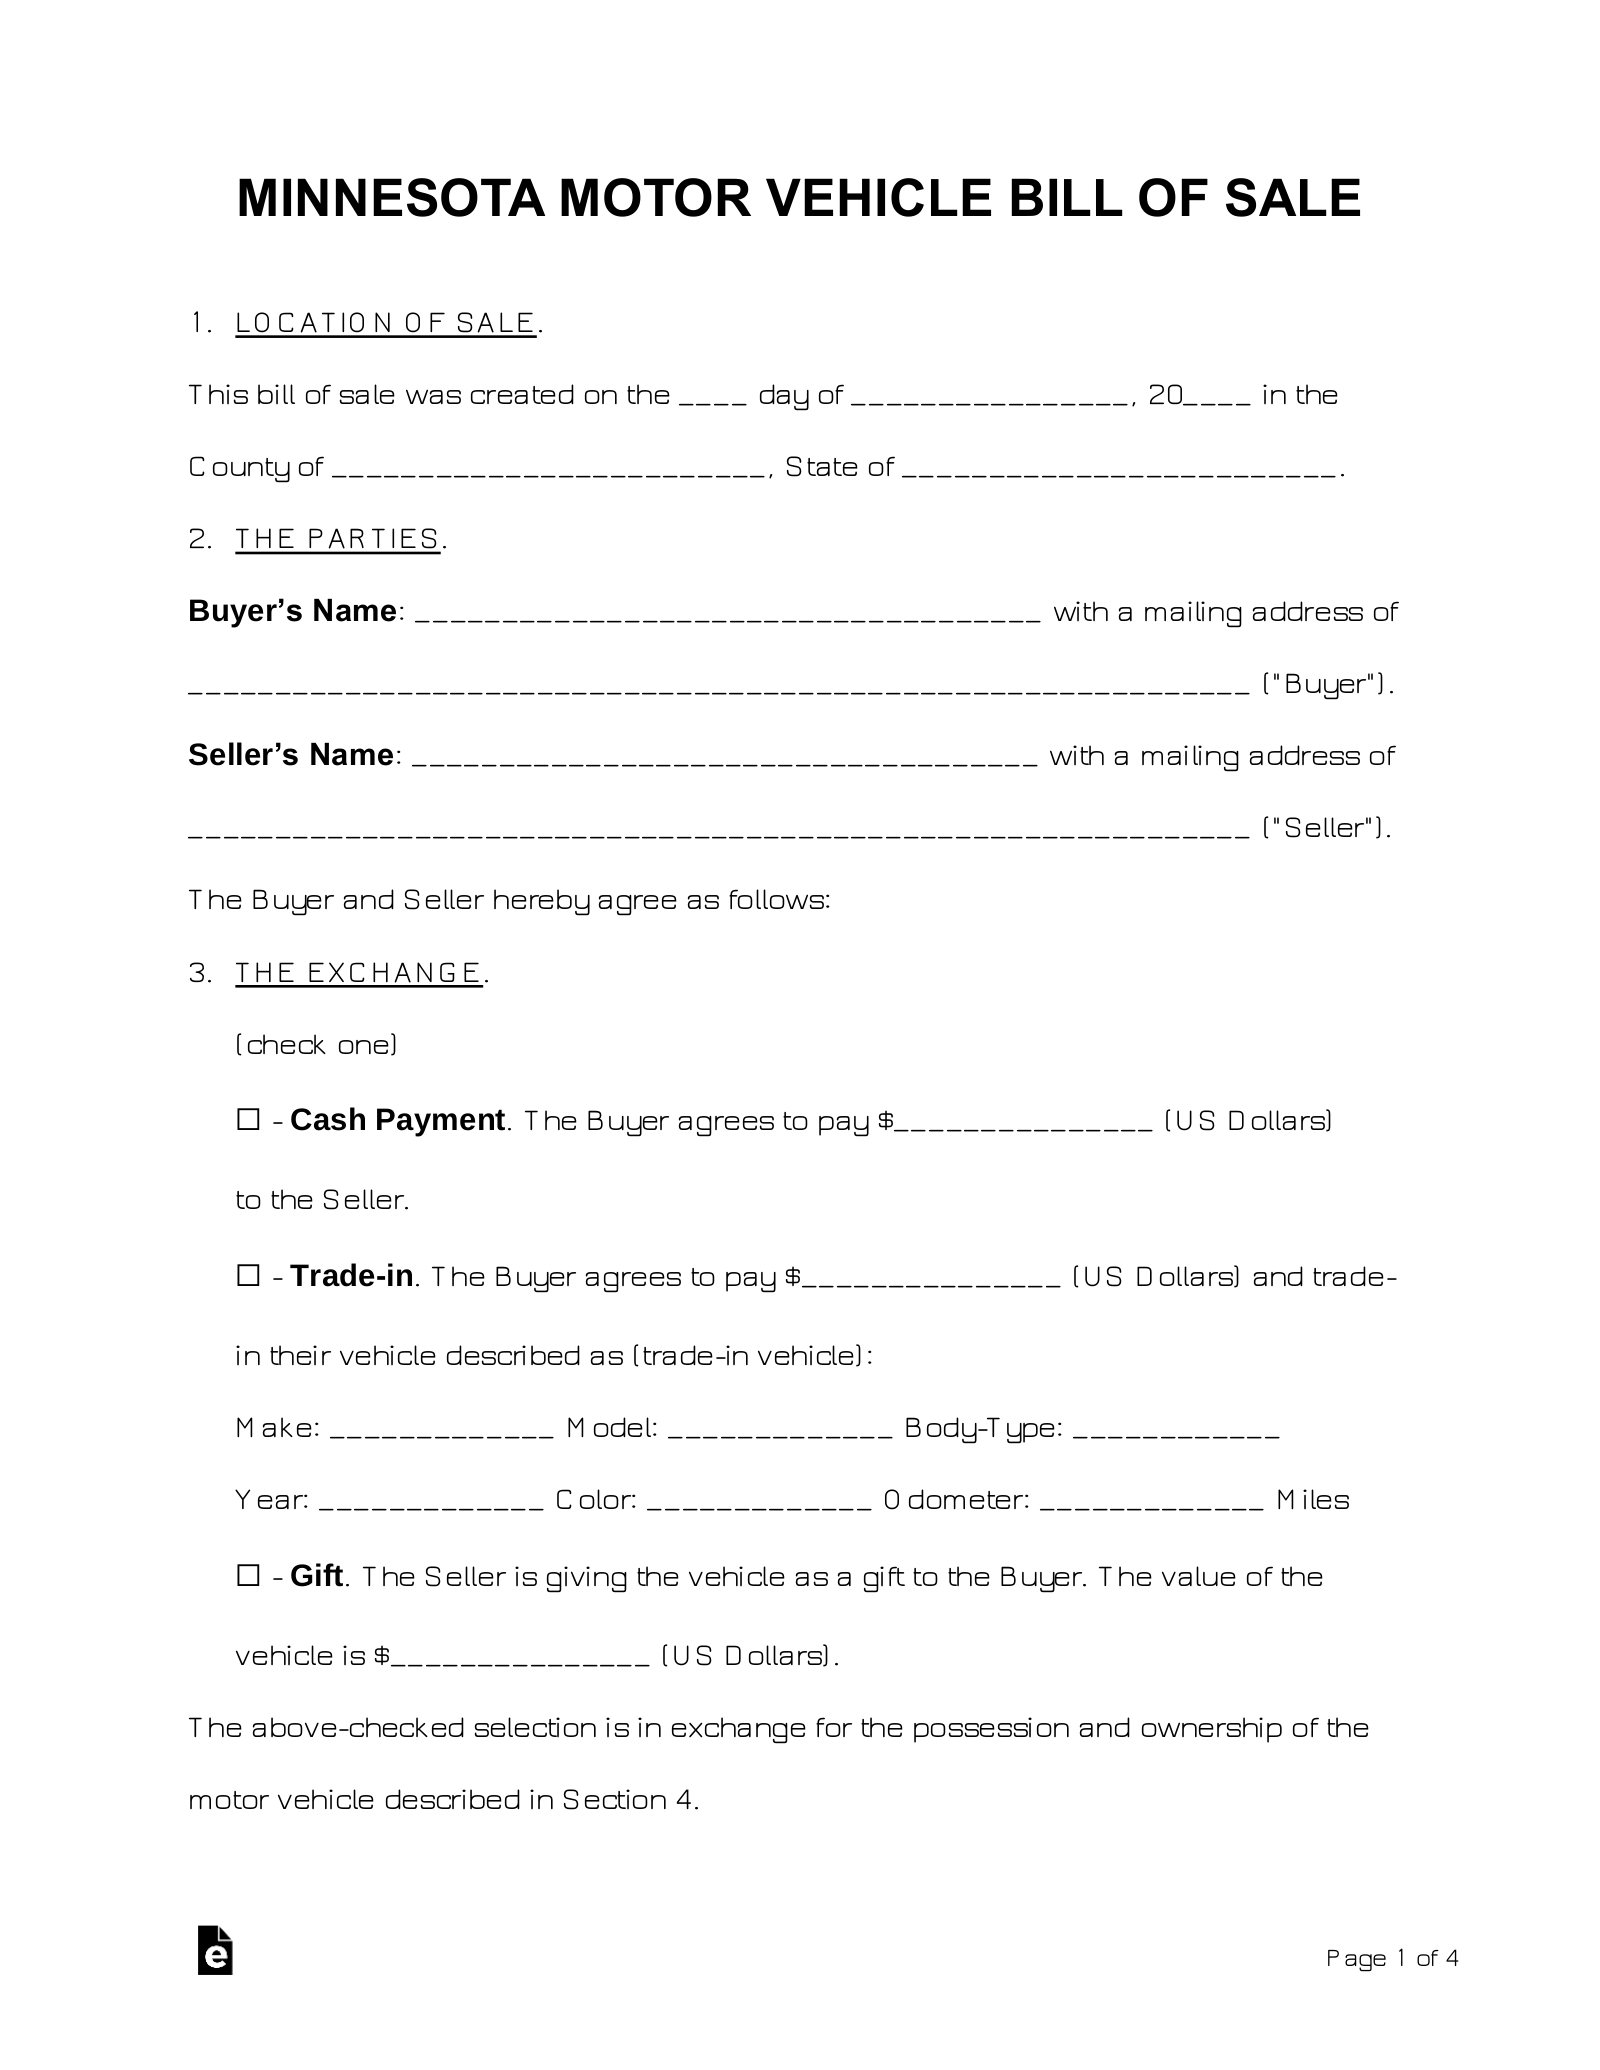 Free Minnesota Bill Of Sale Forms Word Pdf Eforms